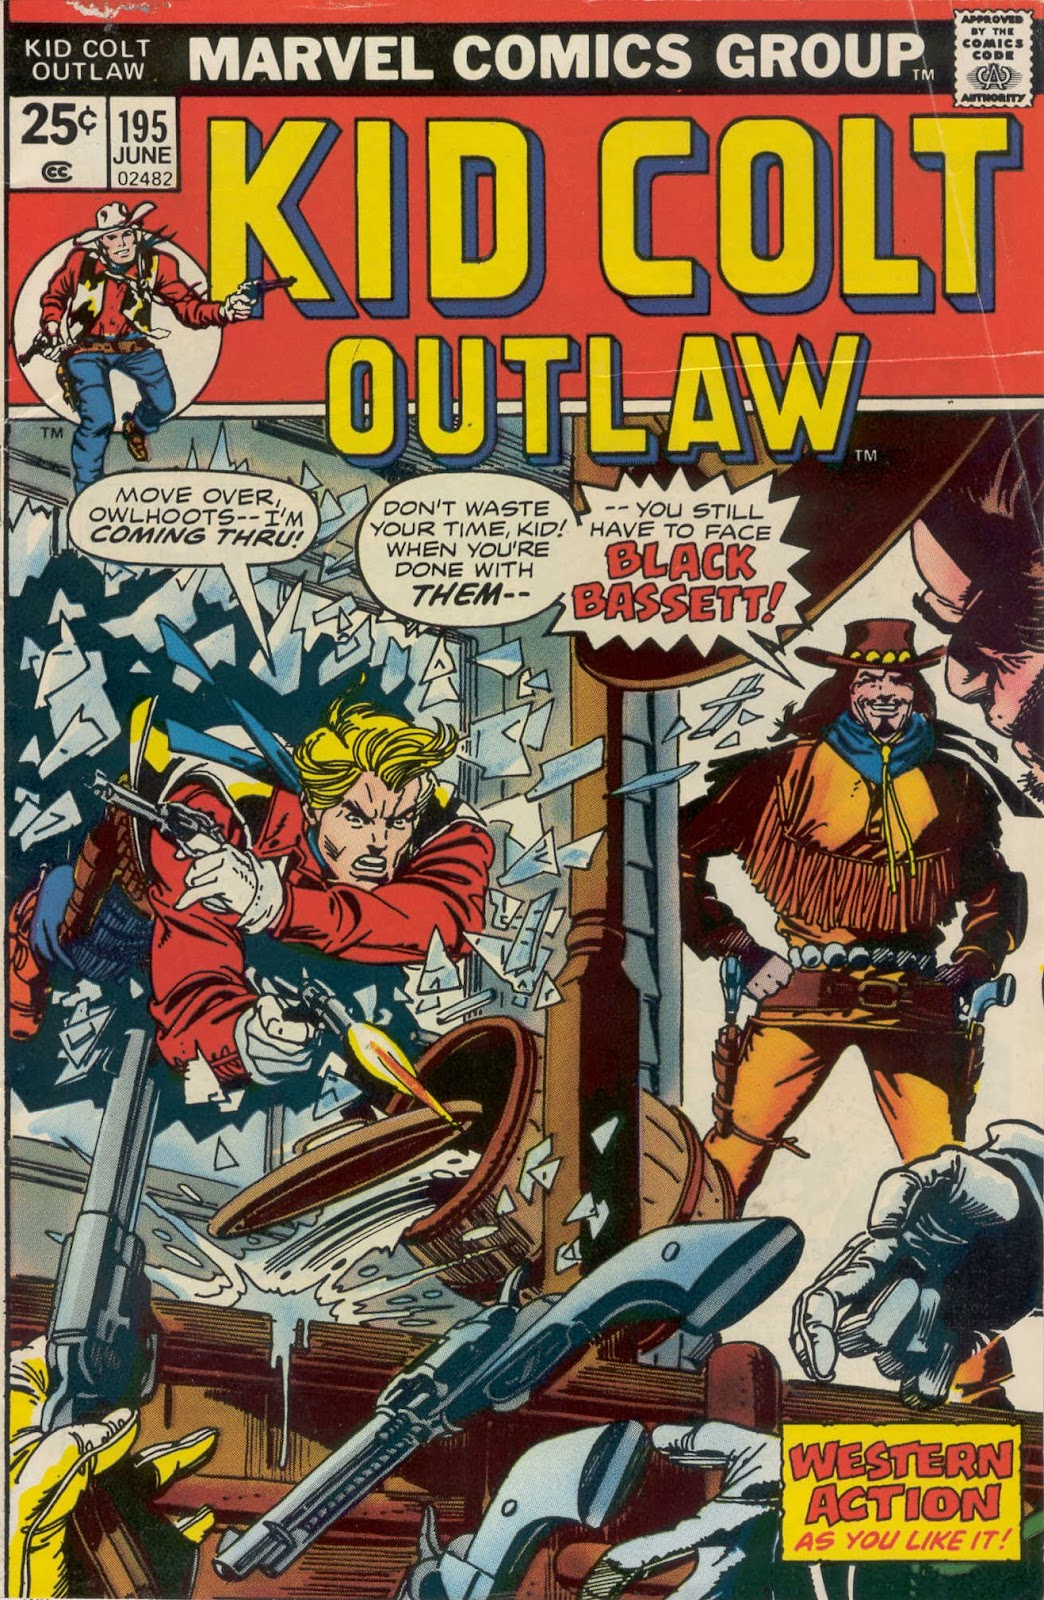 Kid Colt Outlaw issue 195 - Page 1